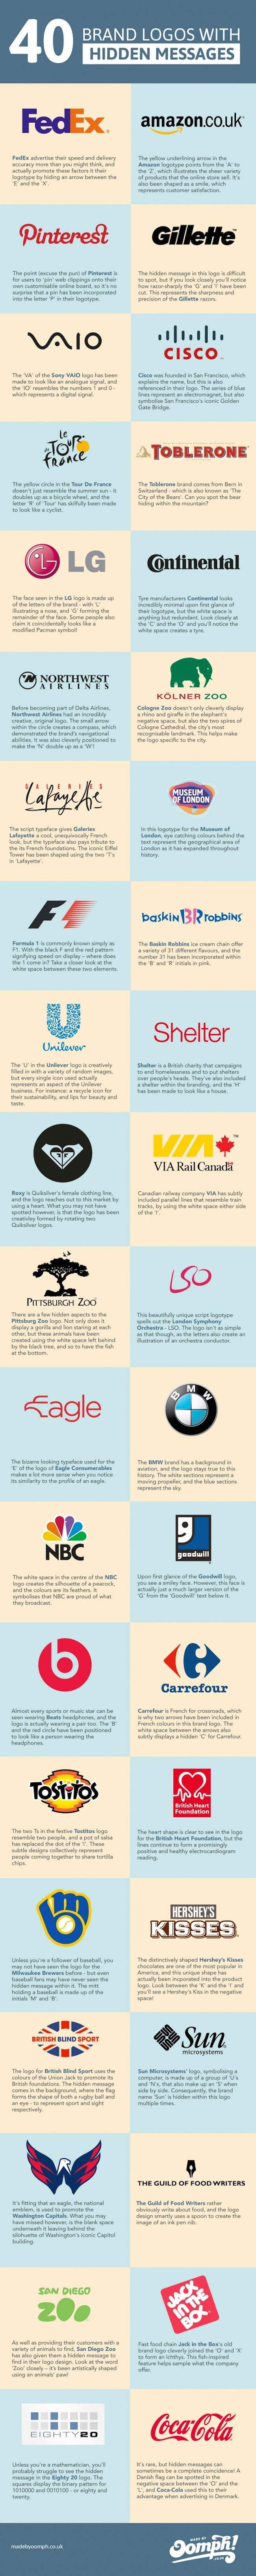 40 Logos With Hidden Messages [Infographic], via @HubSpot